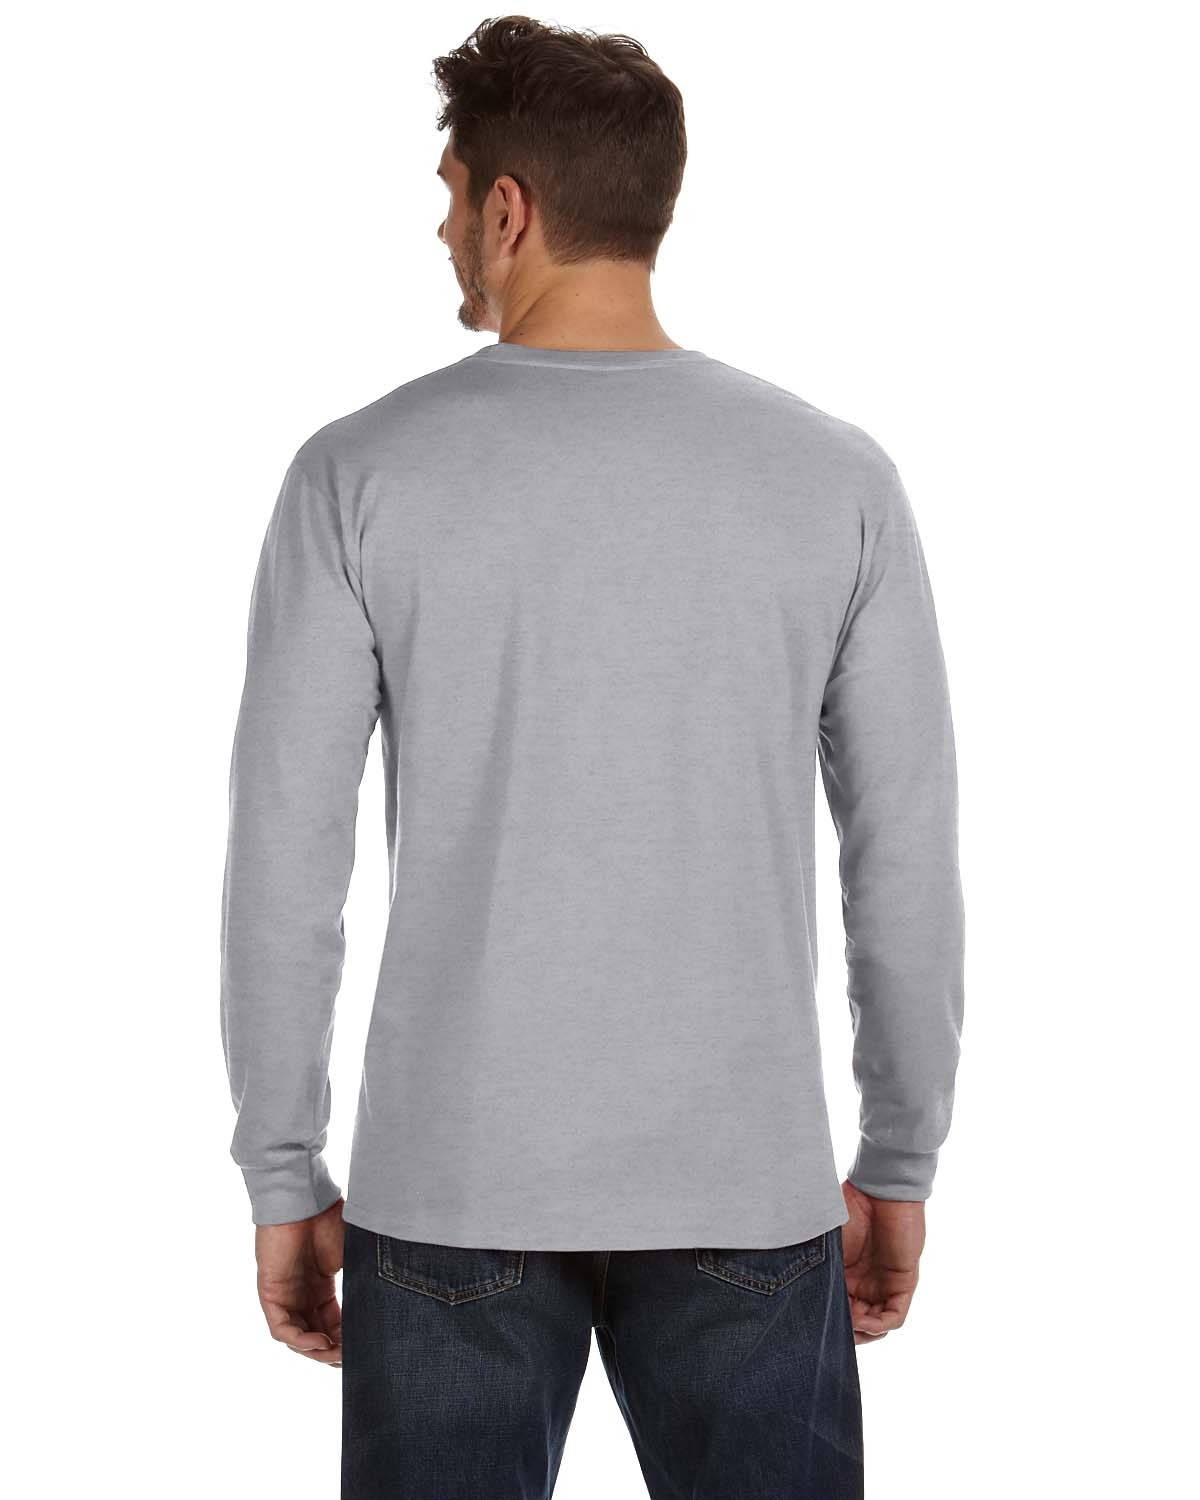 784AN Anvil HEATHER GREY